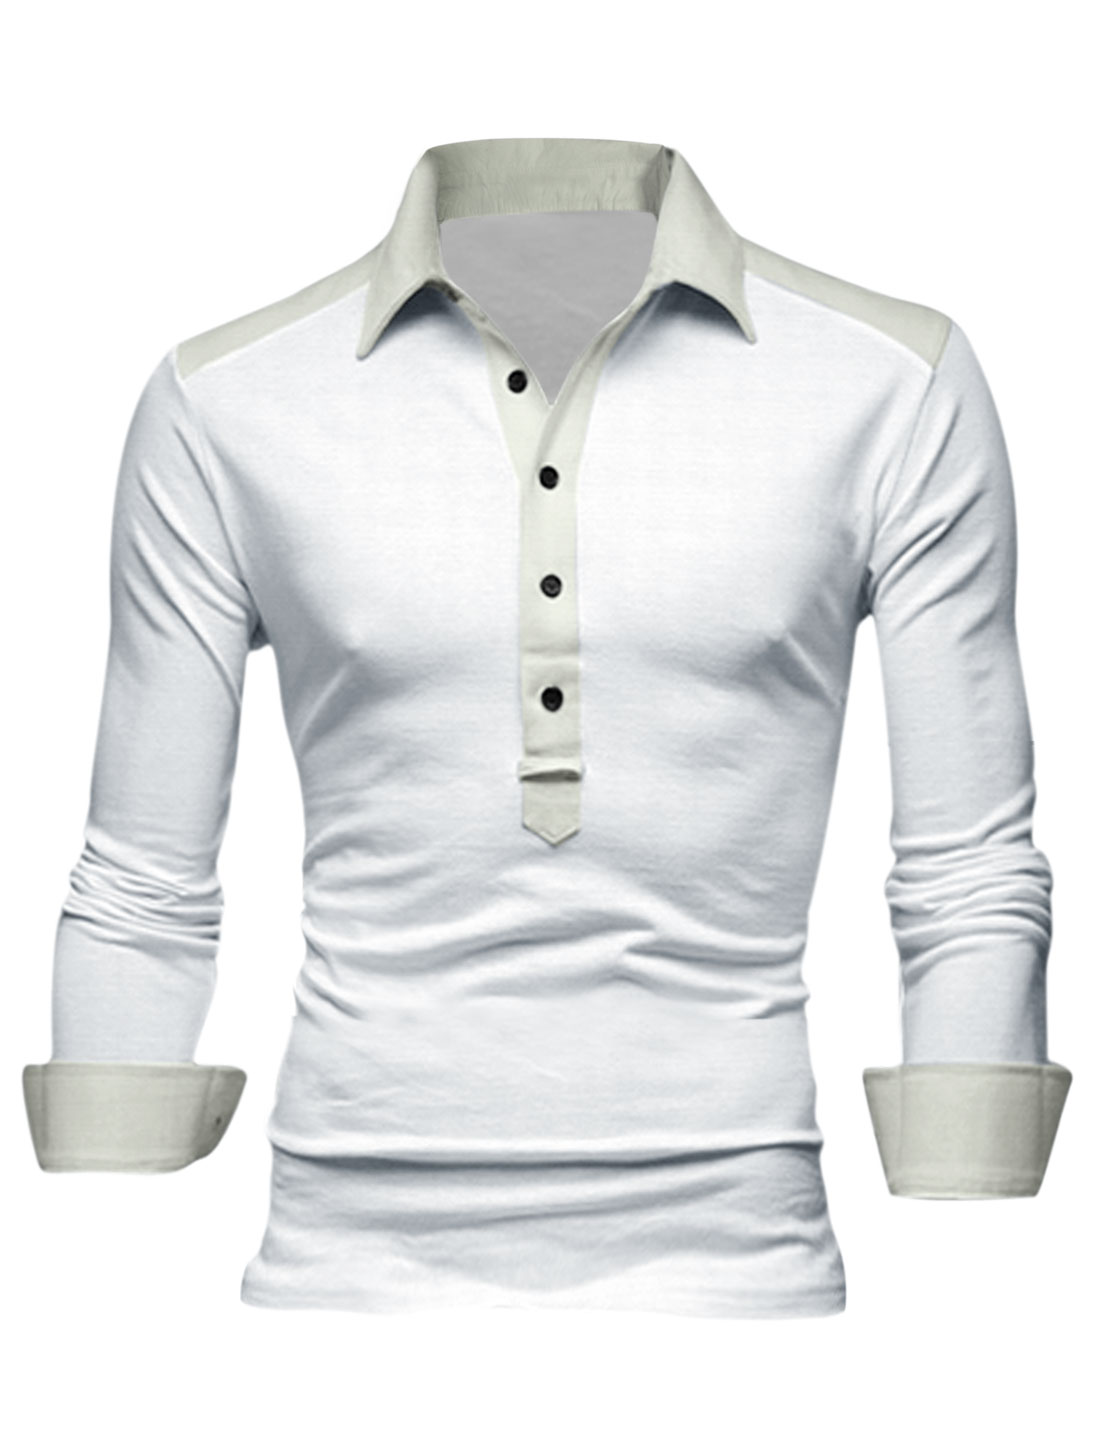 Men Buttoned Cuffs 1/2 Placket Contrast Color Shoulder Casual Polo Shirt White M